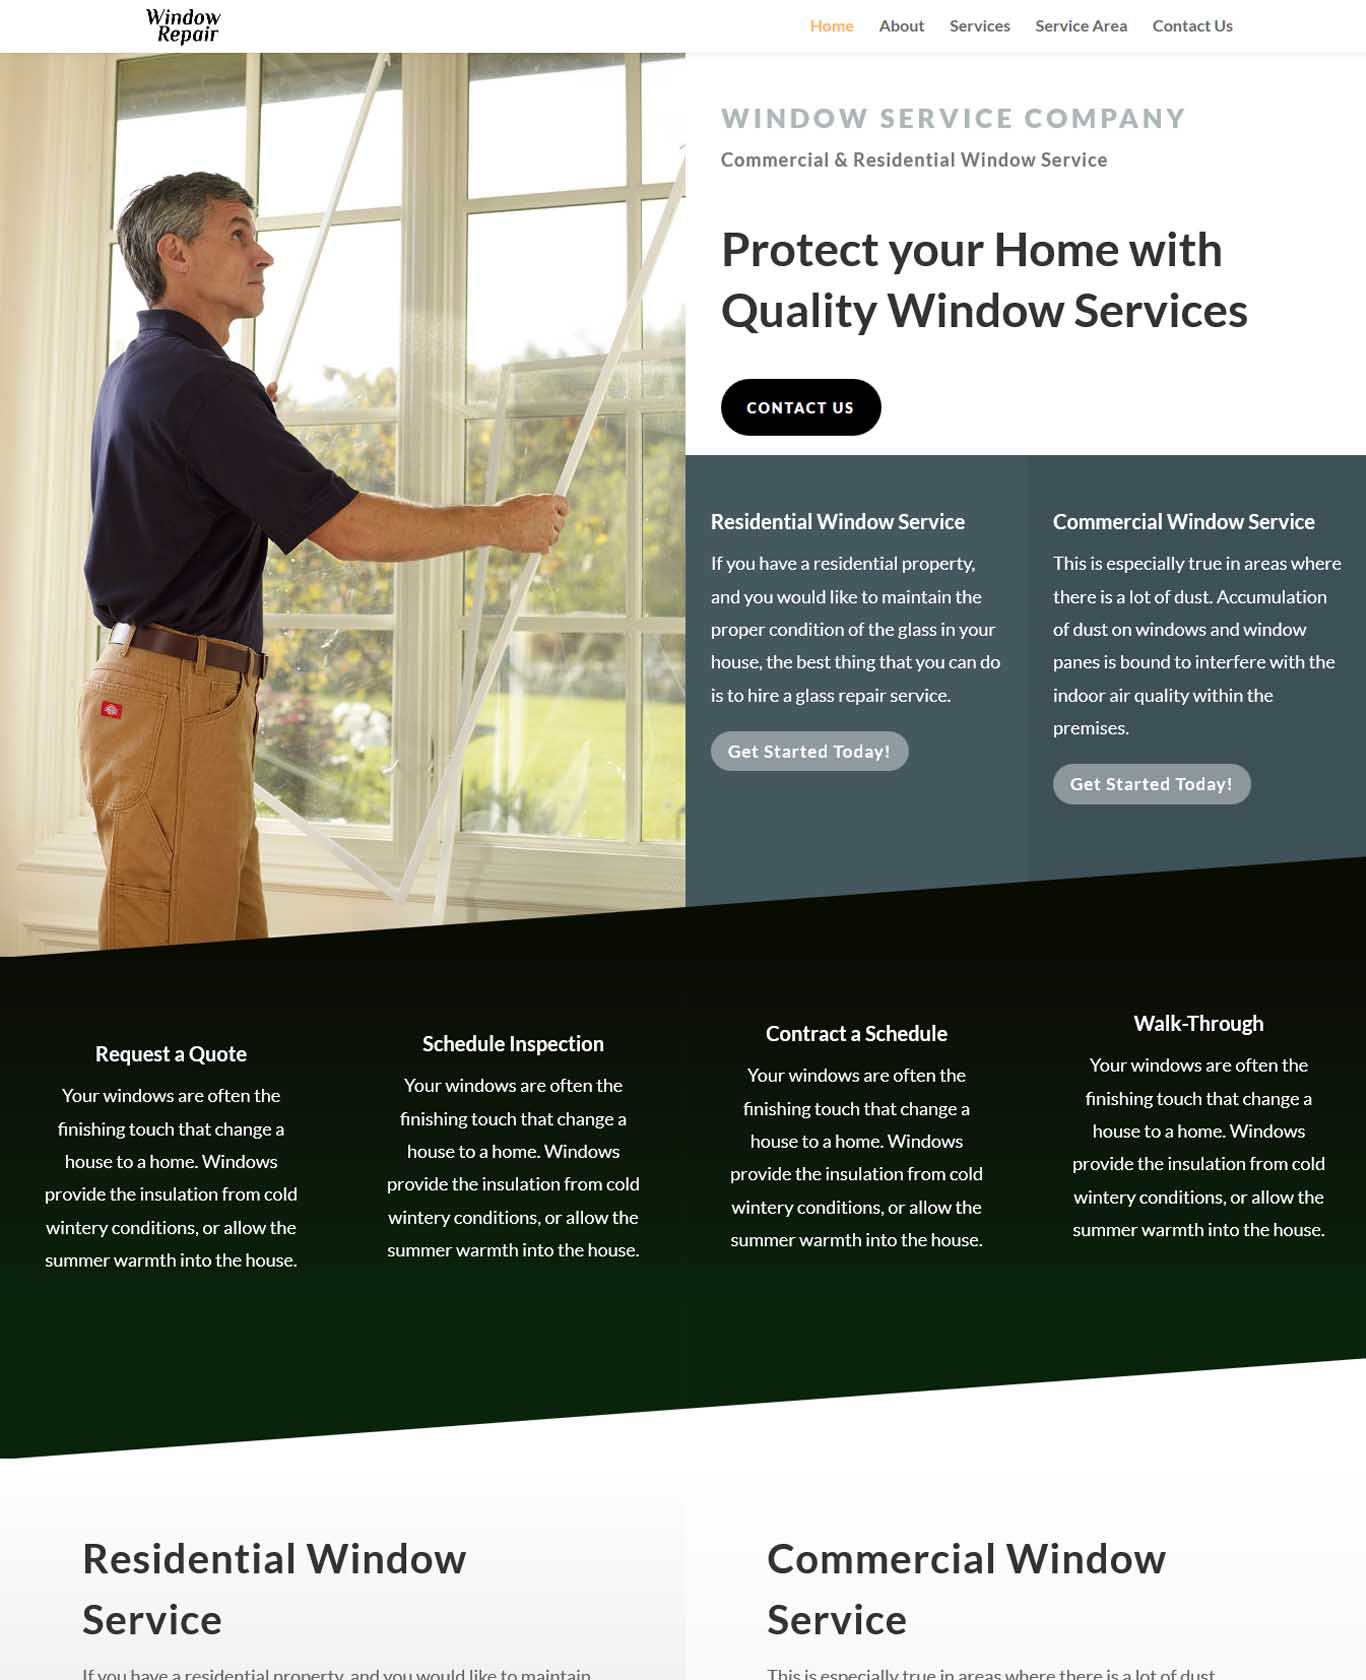 Protect your Home with Quality Window Services